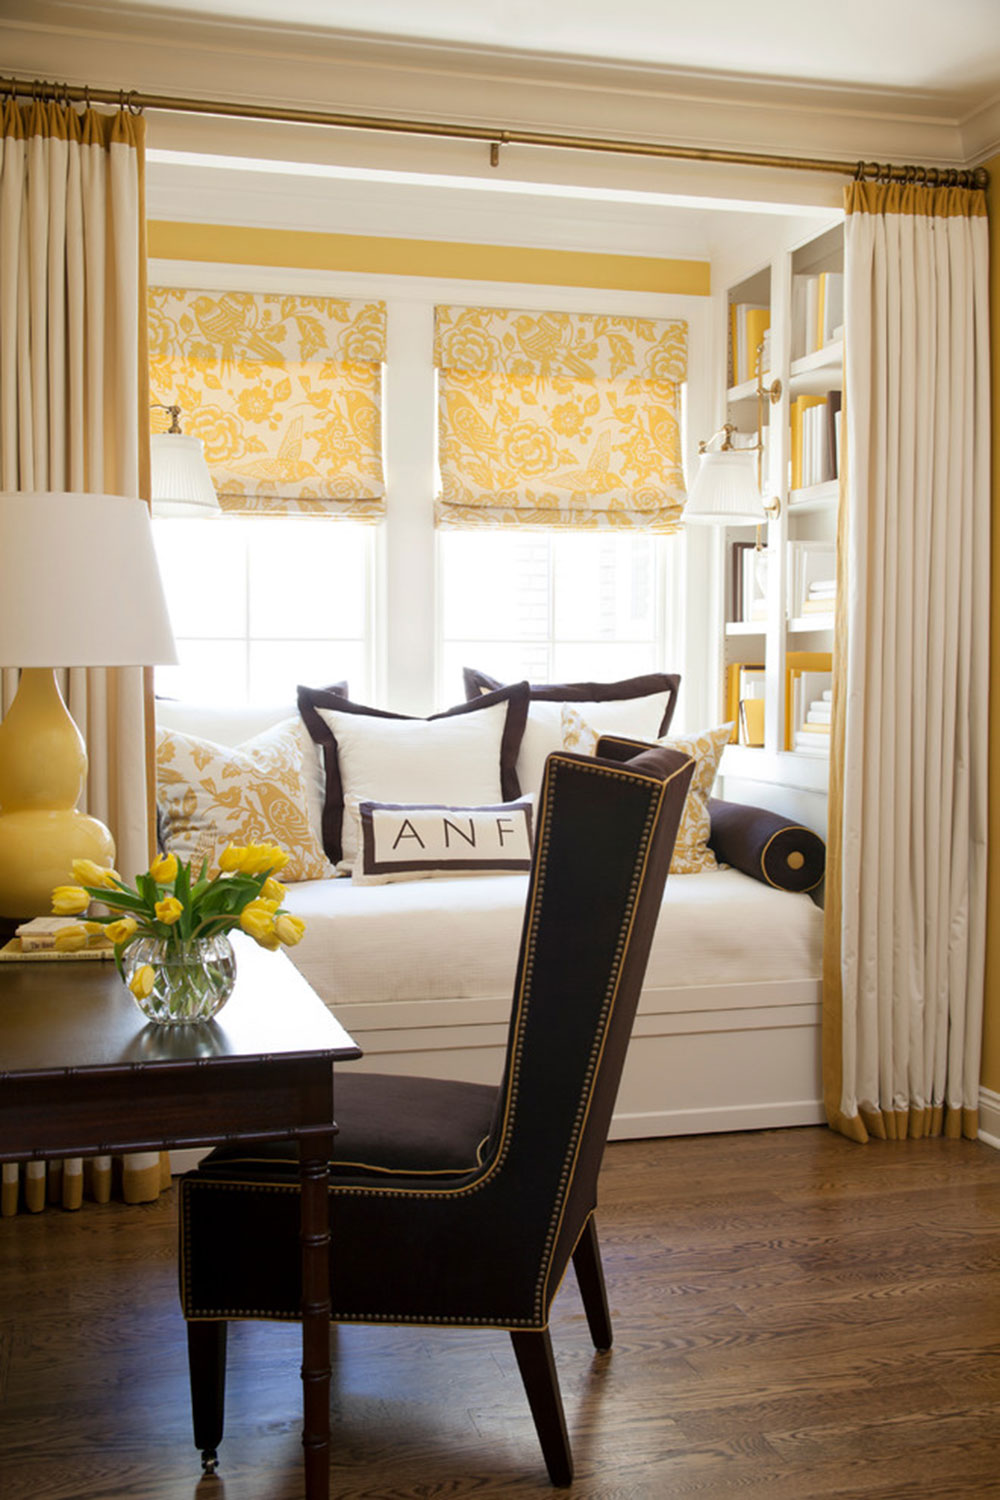 Homey-Feelings-With-These-Bay-Window-Decor-16 bay window decor to try out in your home